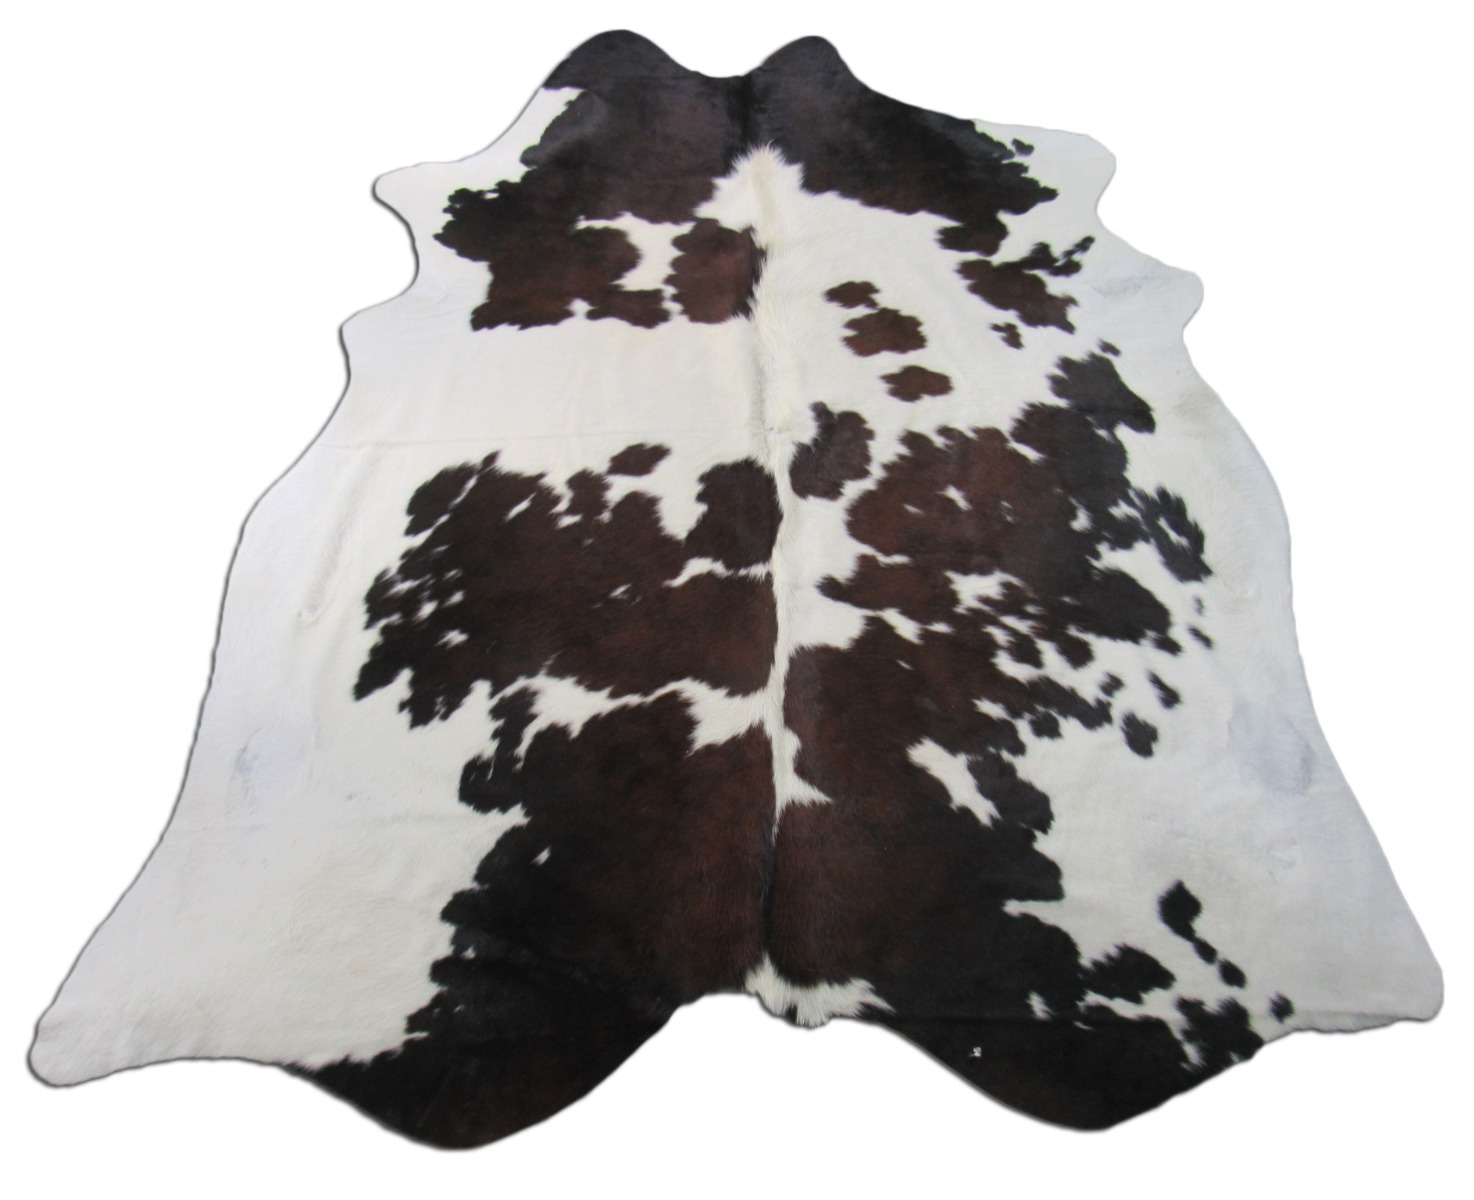 A-1375 Brown and White Speckled Cowhide Rug Size: 7 1/2' X 6 3/4'